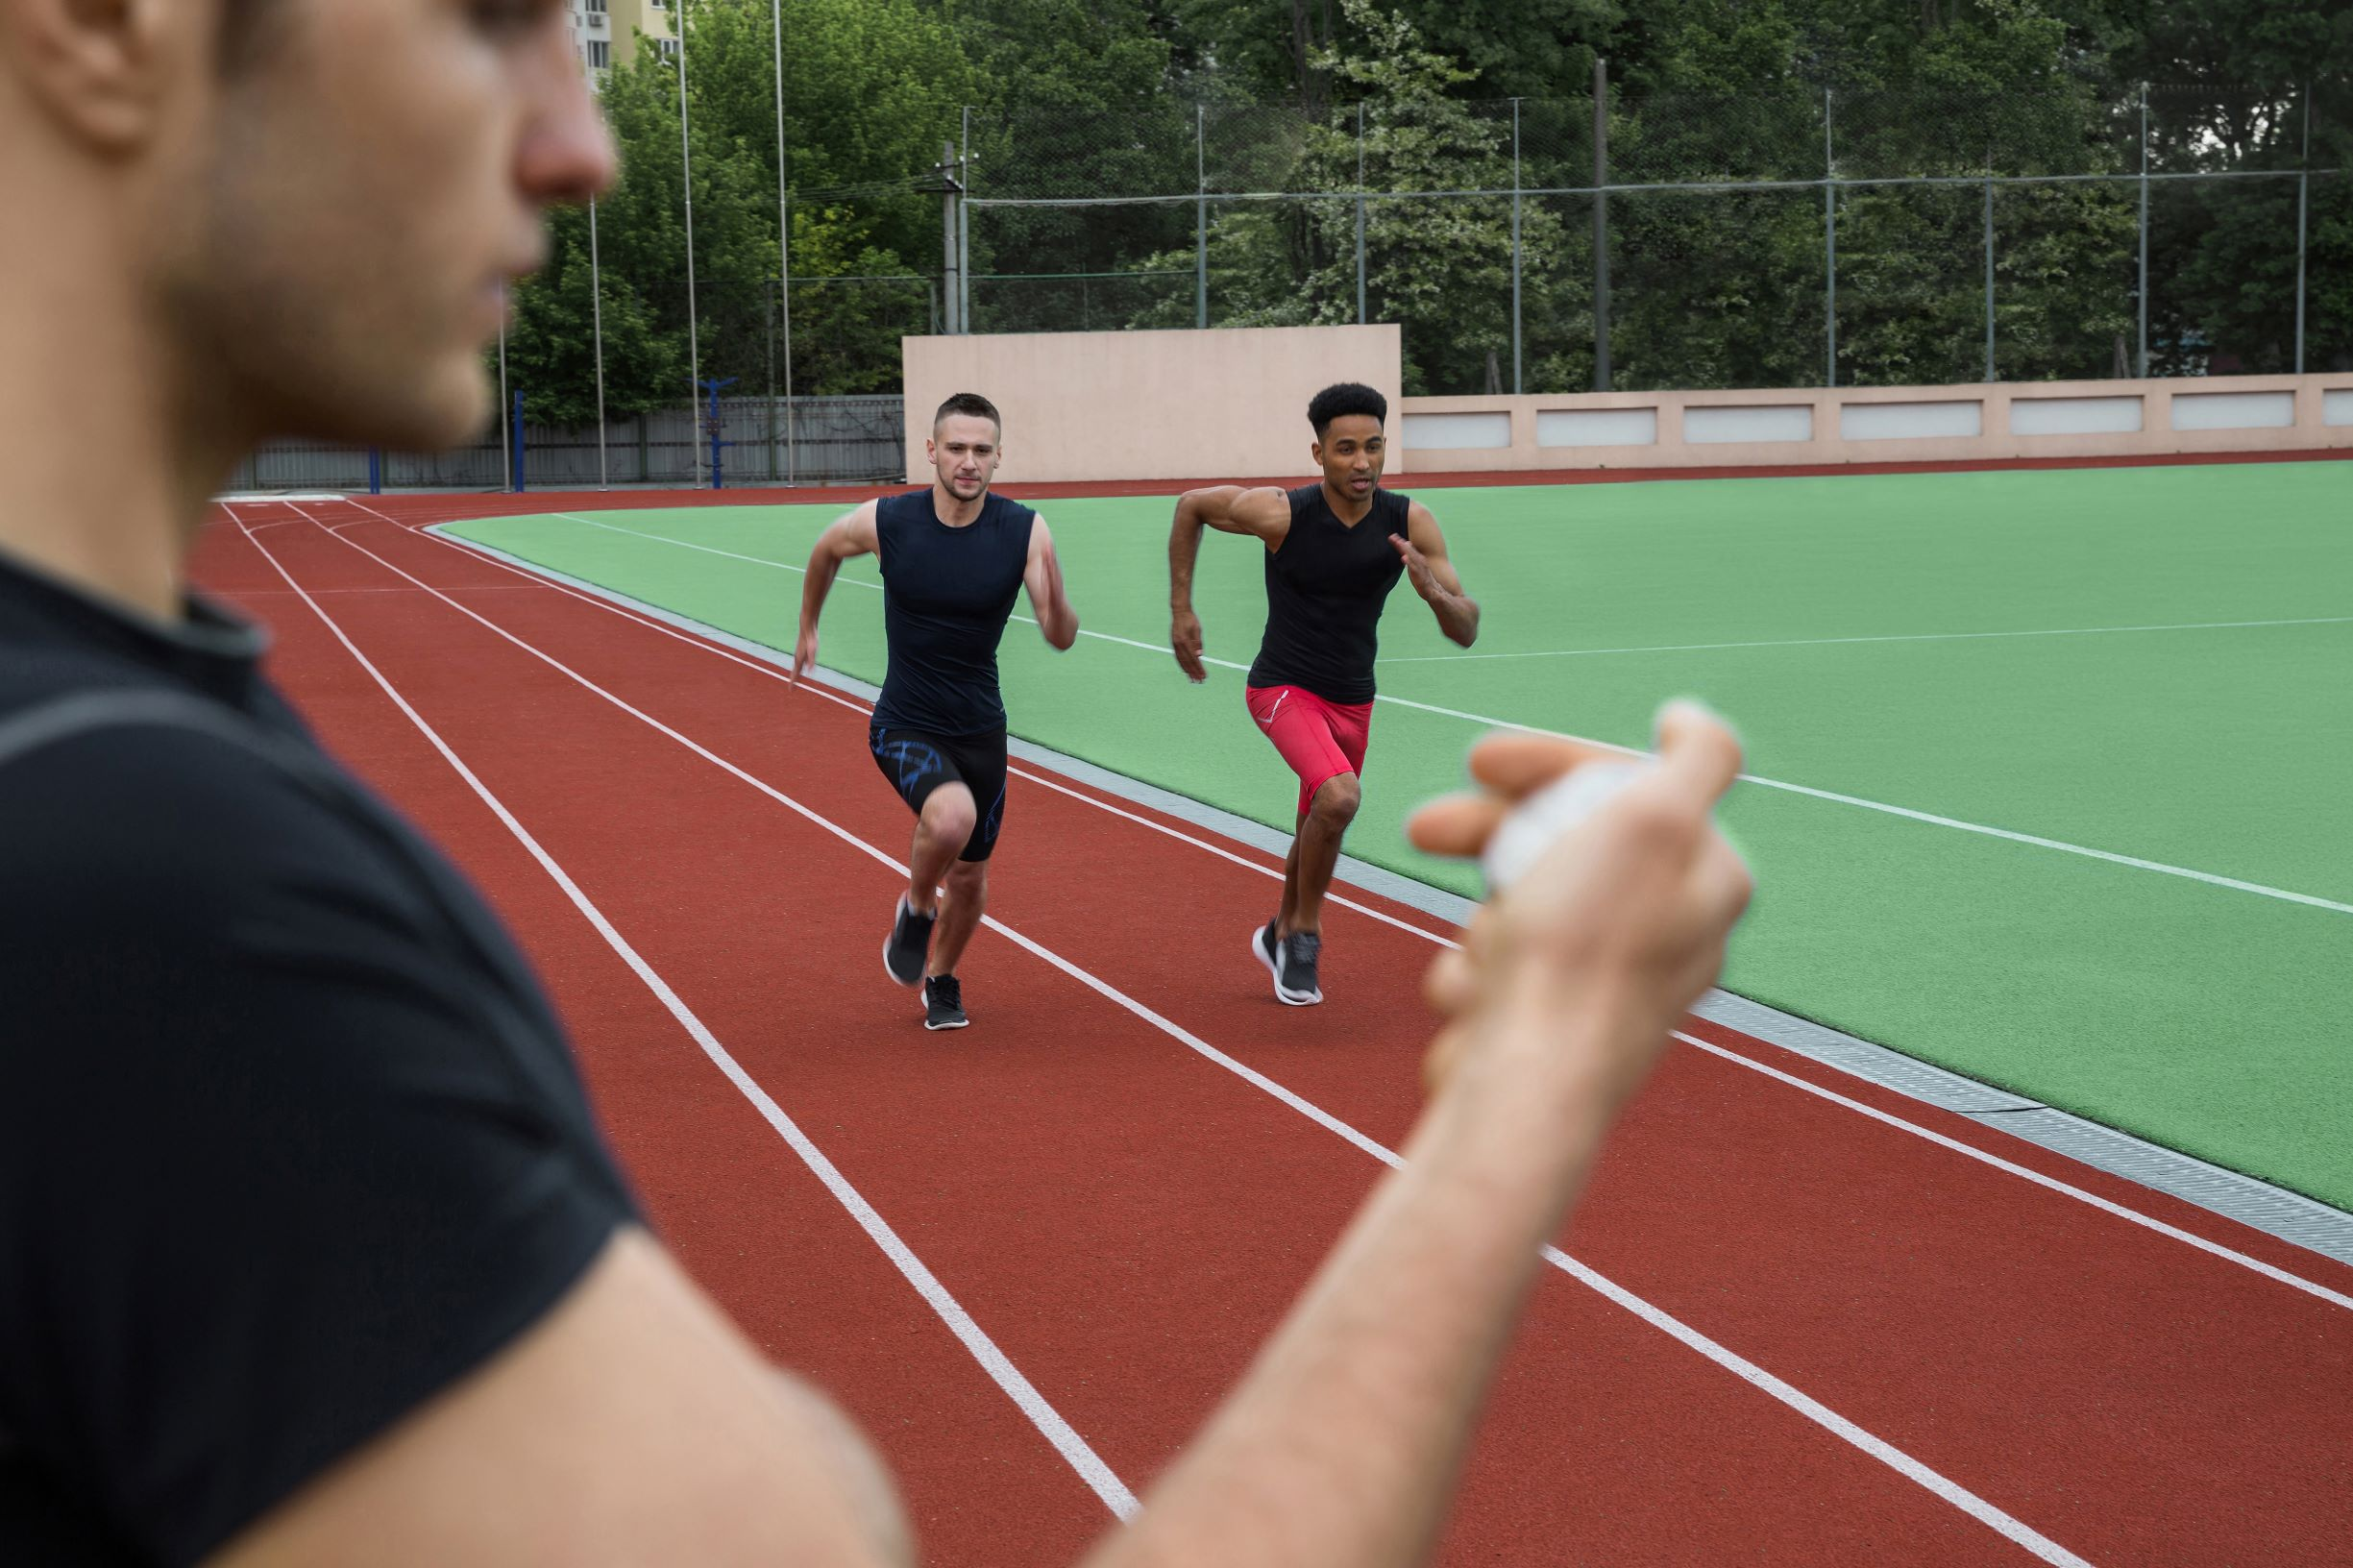 storyblocks-image-of-young-multiethnic-athlete-men-run-on-running-track-outdoors-historic-stop-watch-time-measurement_HCxUy7npc-.jpg